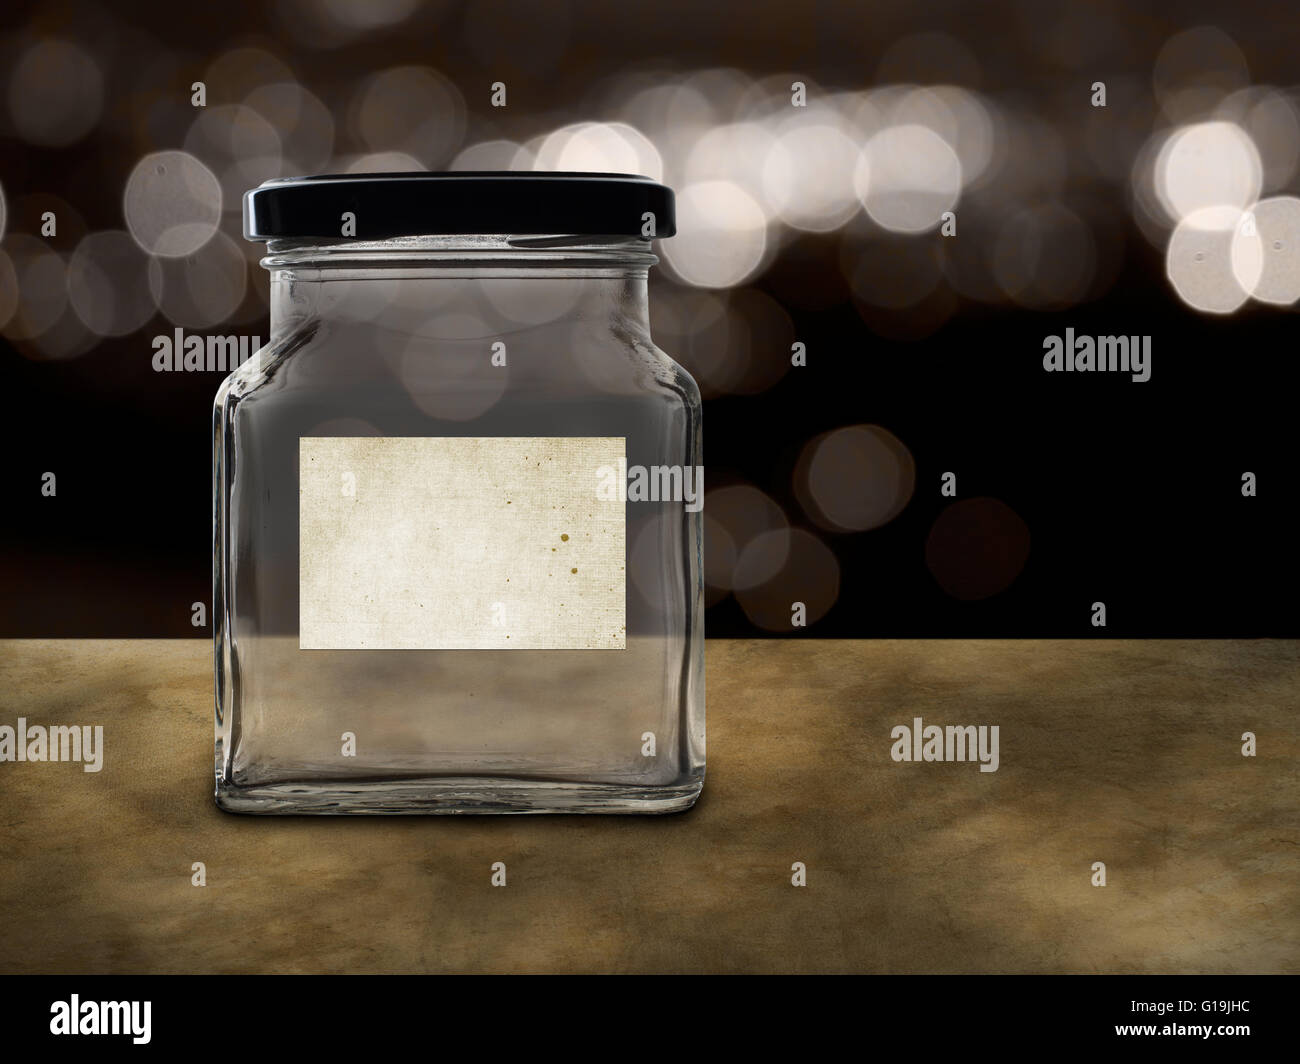 Empty jar for tips, savings, or pension etc. Many possible labels. - Stock Image